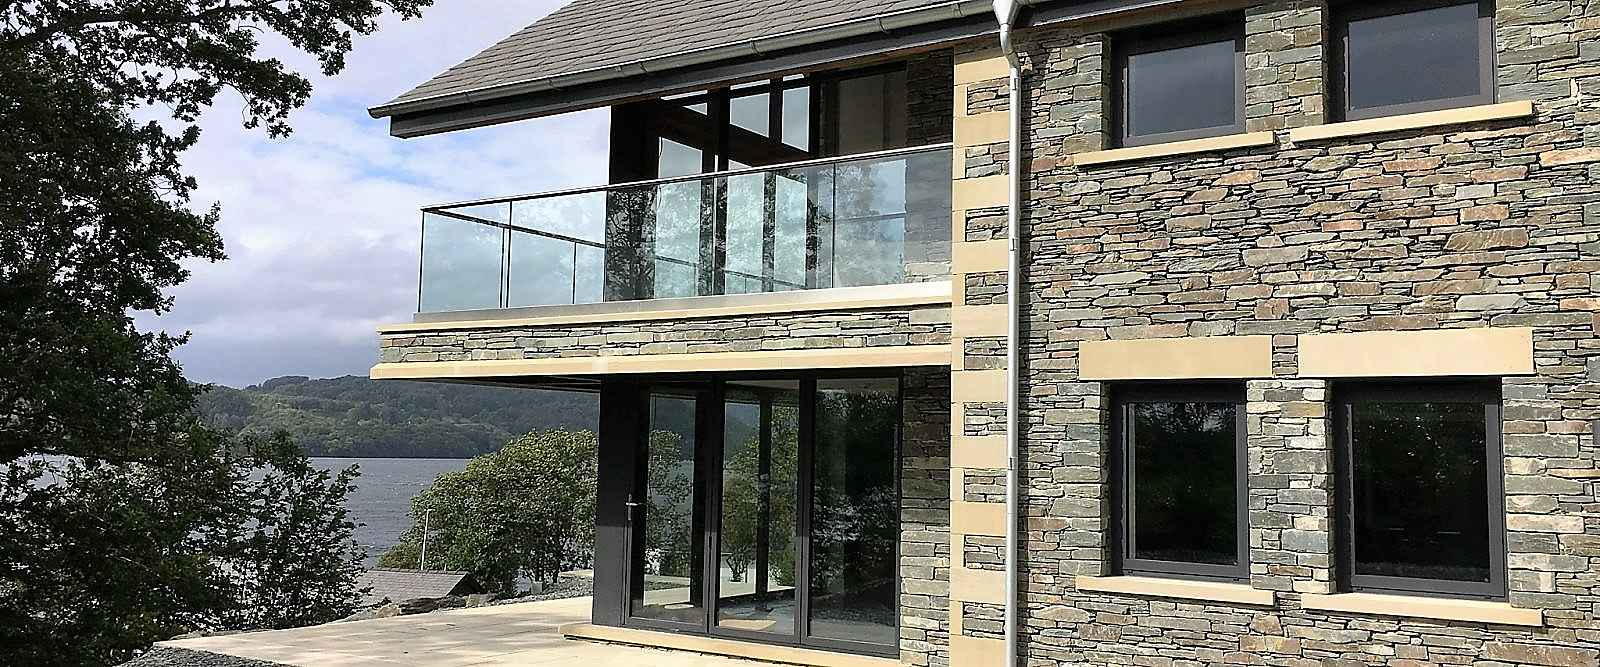 Stunning Lake District home with Contemporary Aluminium Windows